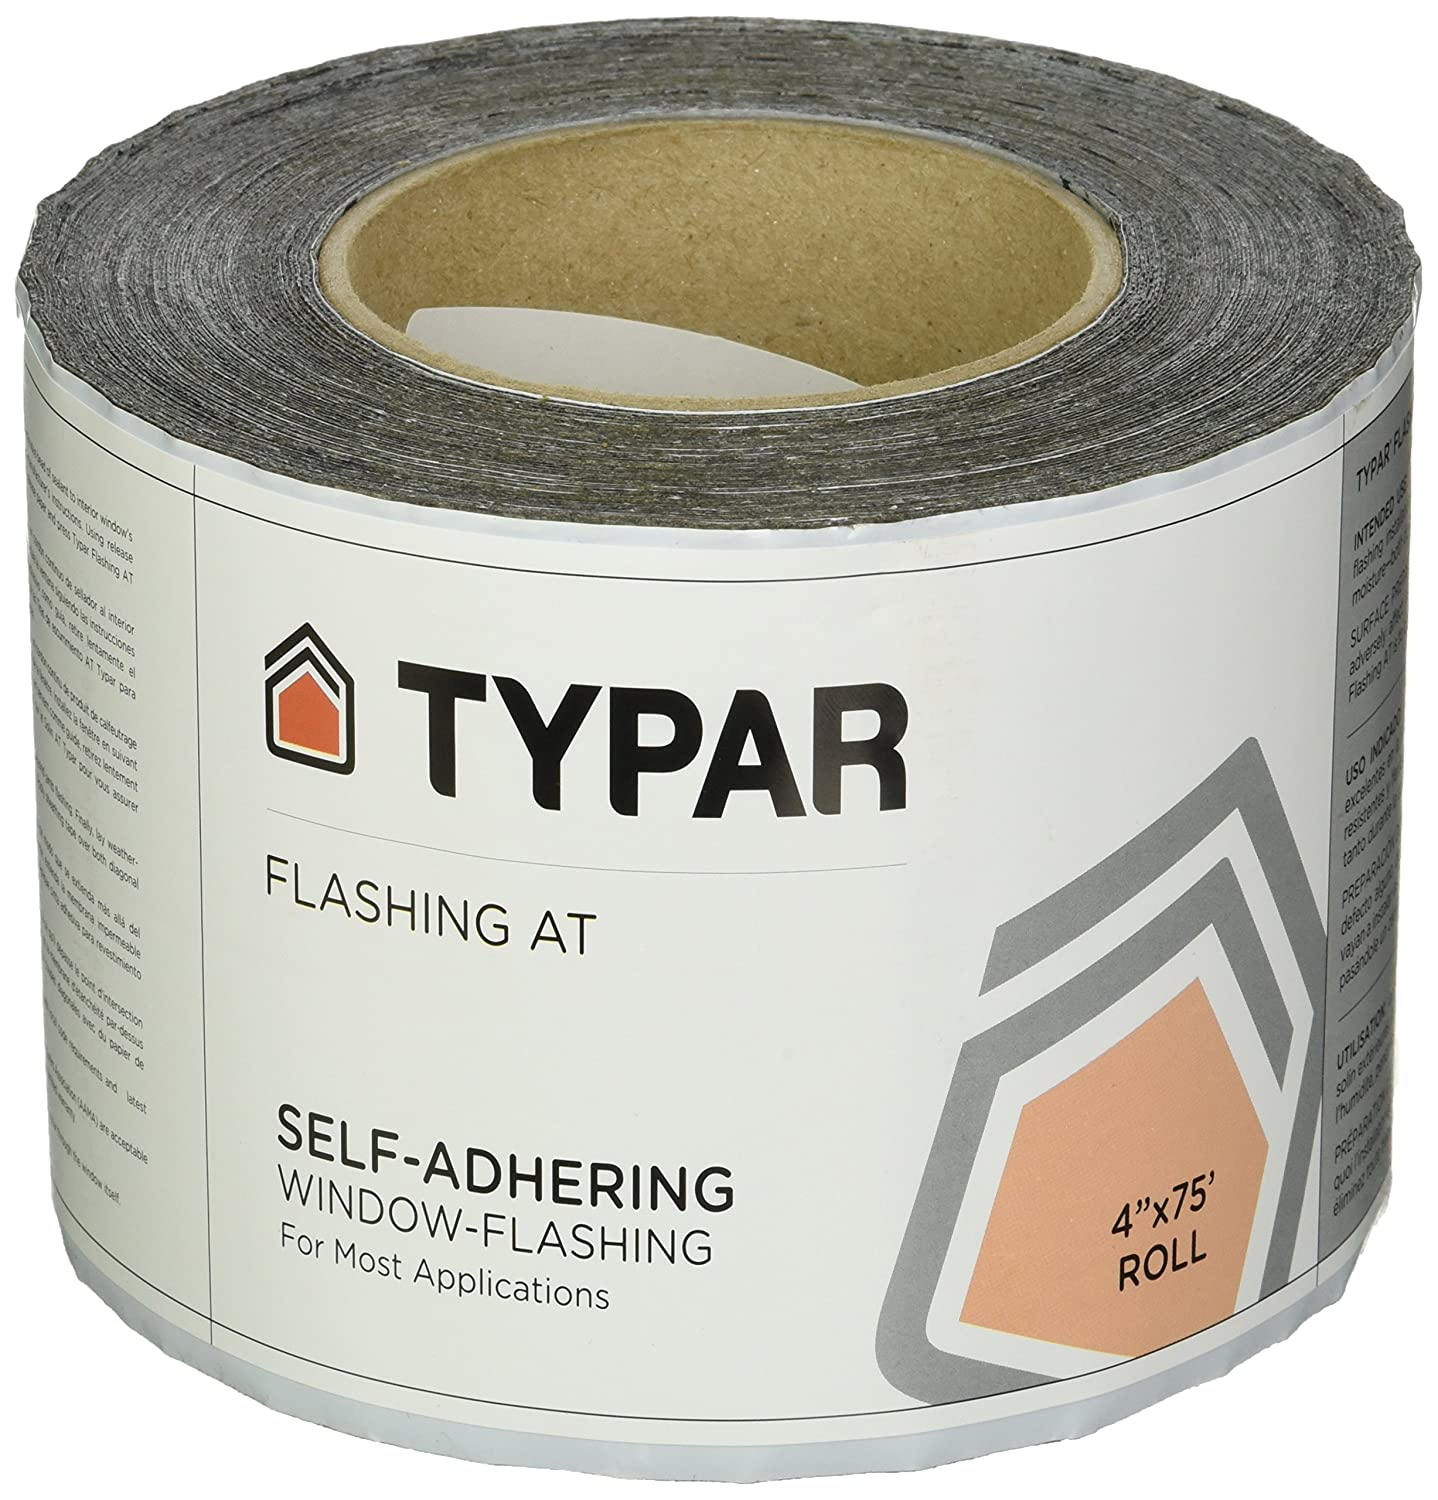 Typar All Temperature Maximum Adhesion Window Flashing 6in x75ft Roll  NEW